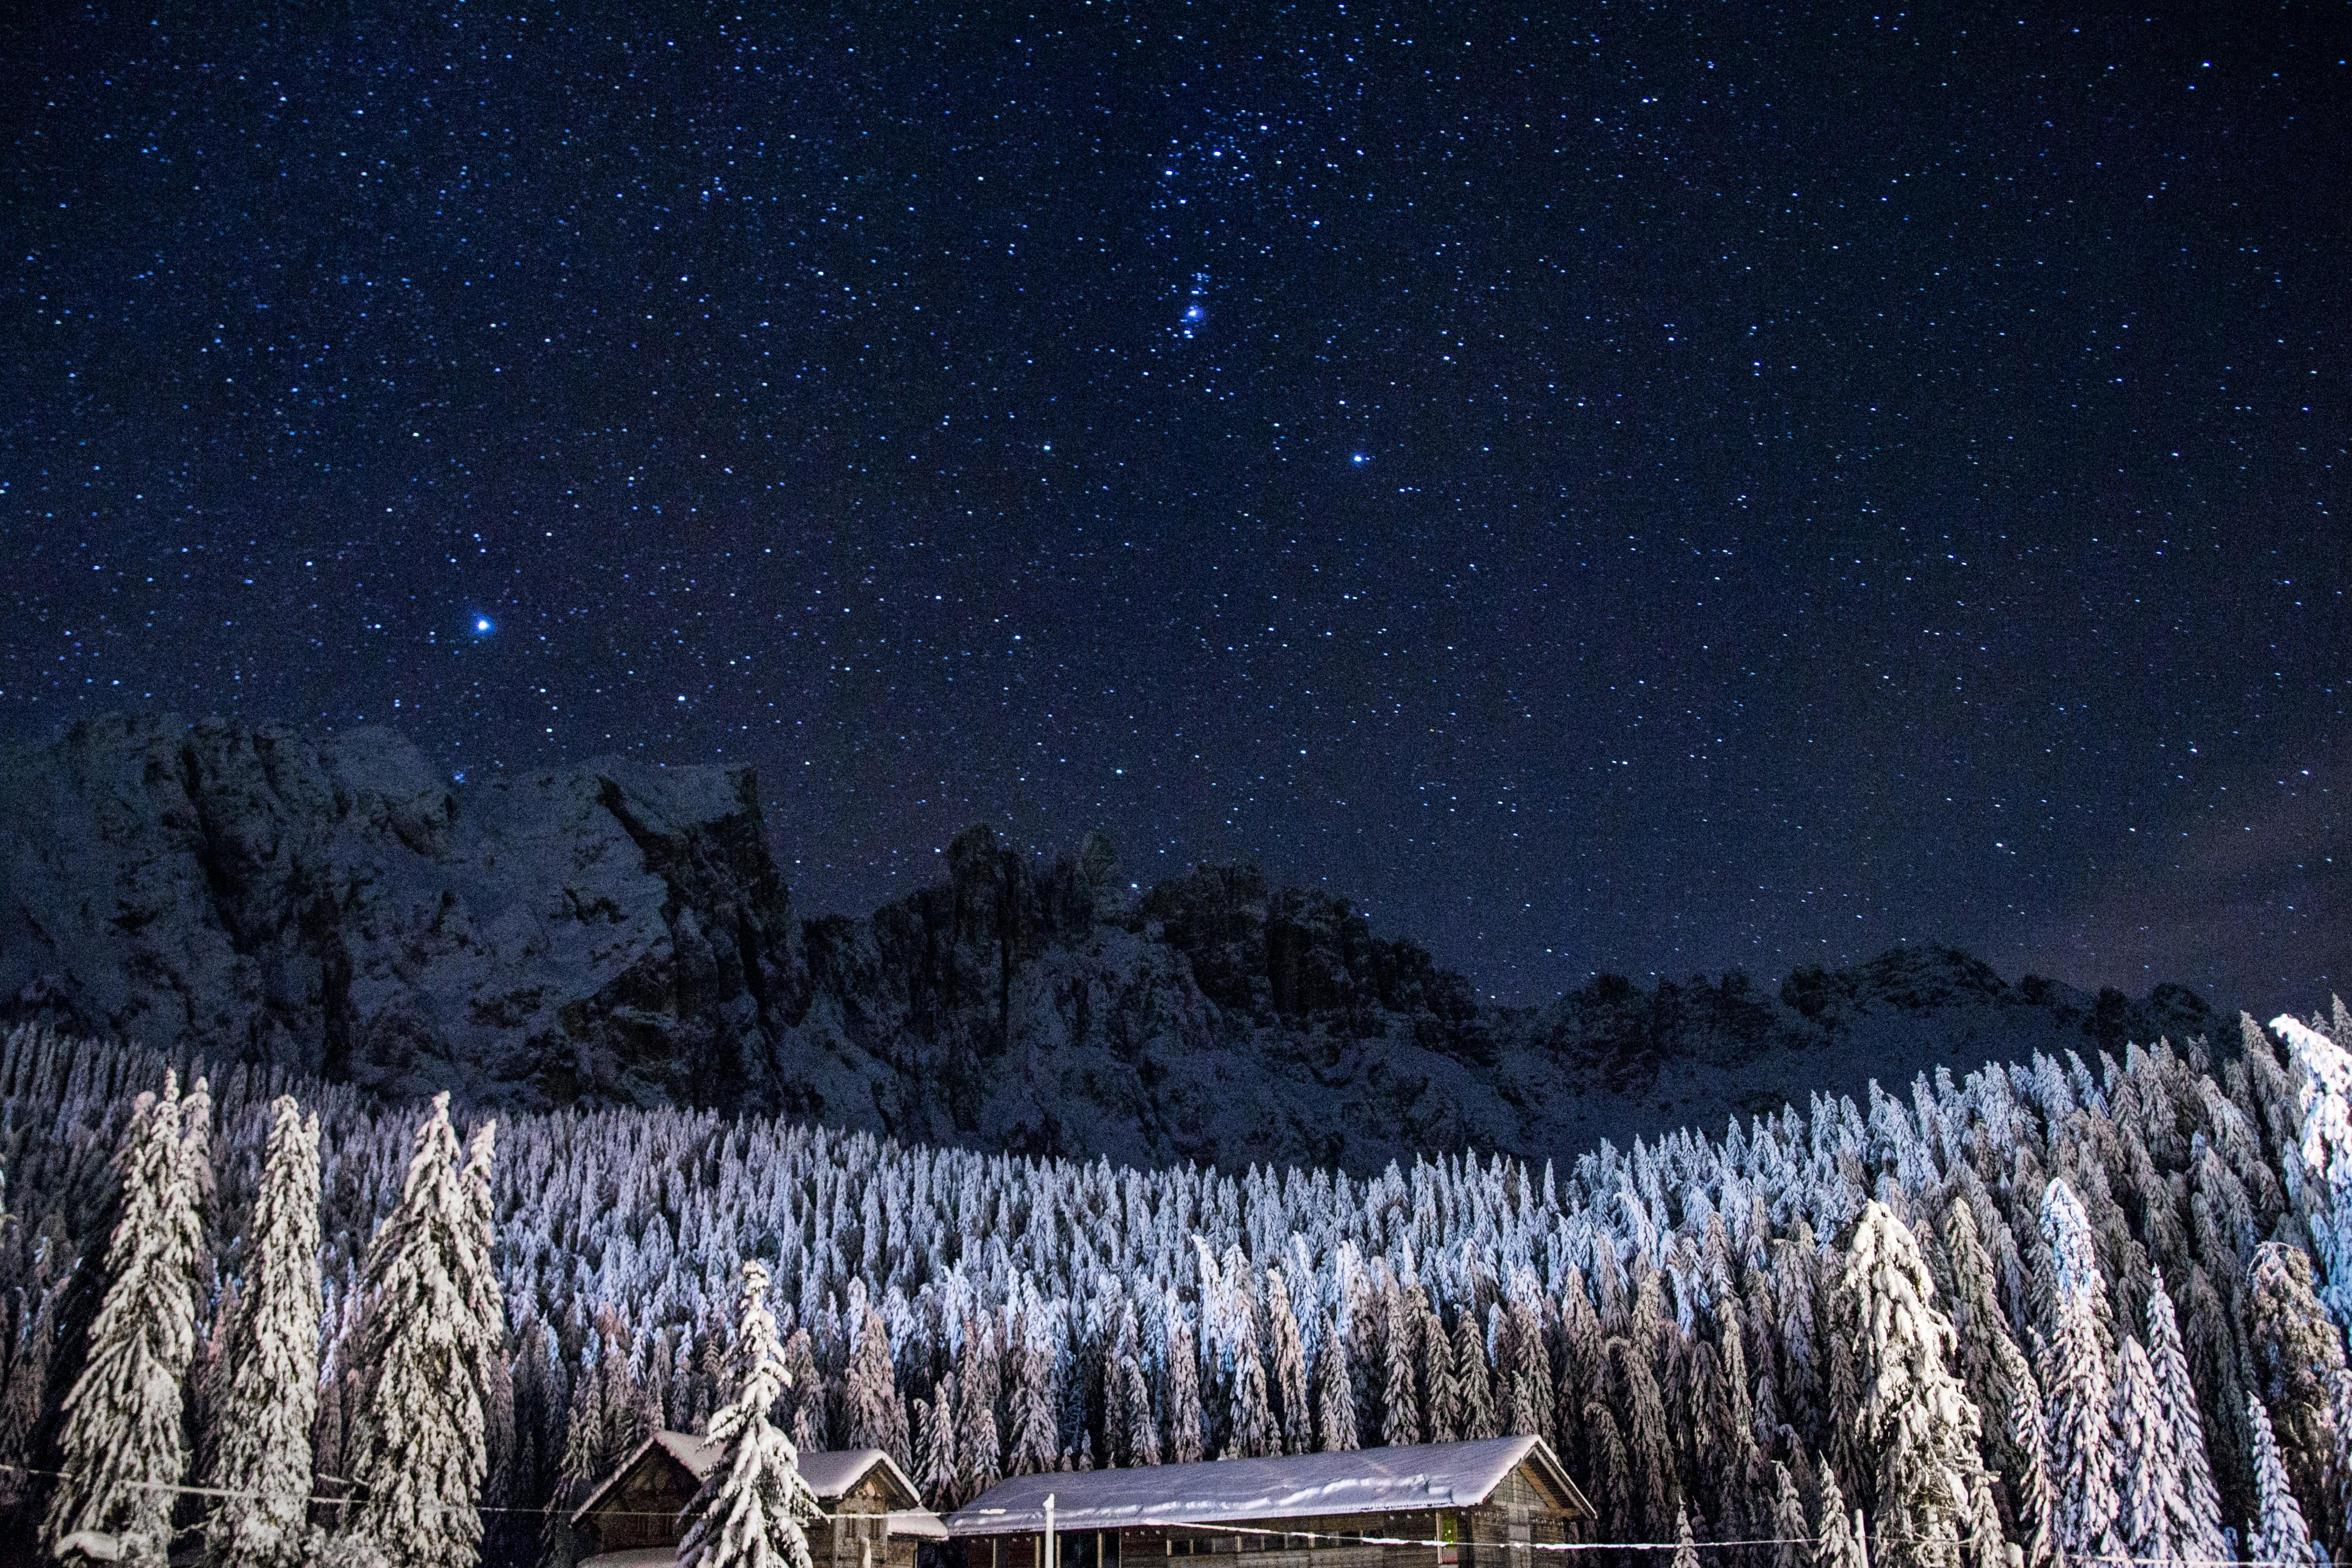 Starry night sky over a snowy forest at the foot of a mountain ridge